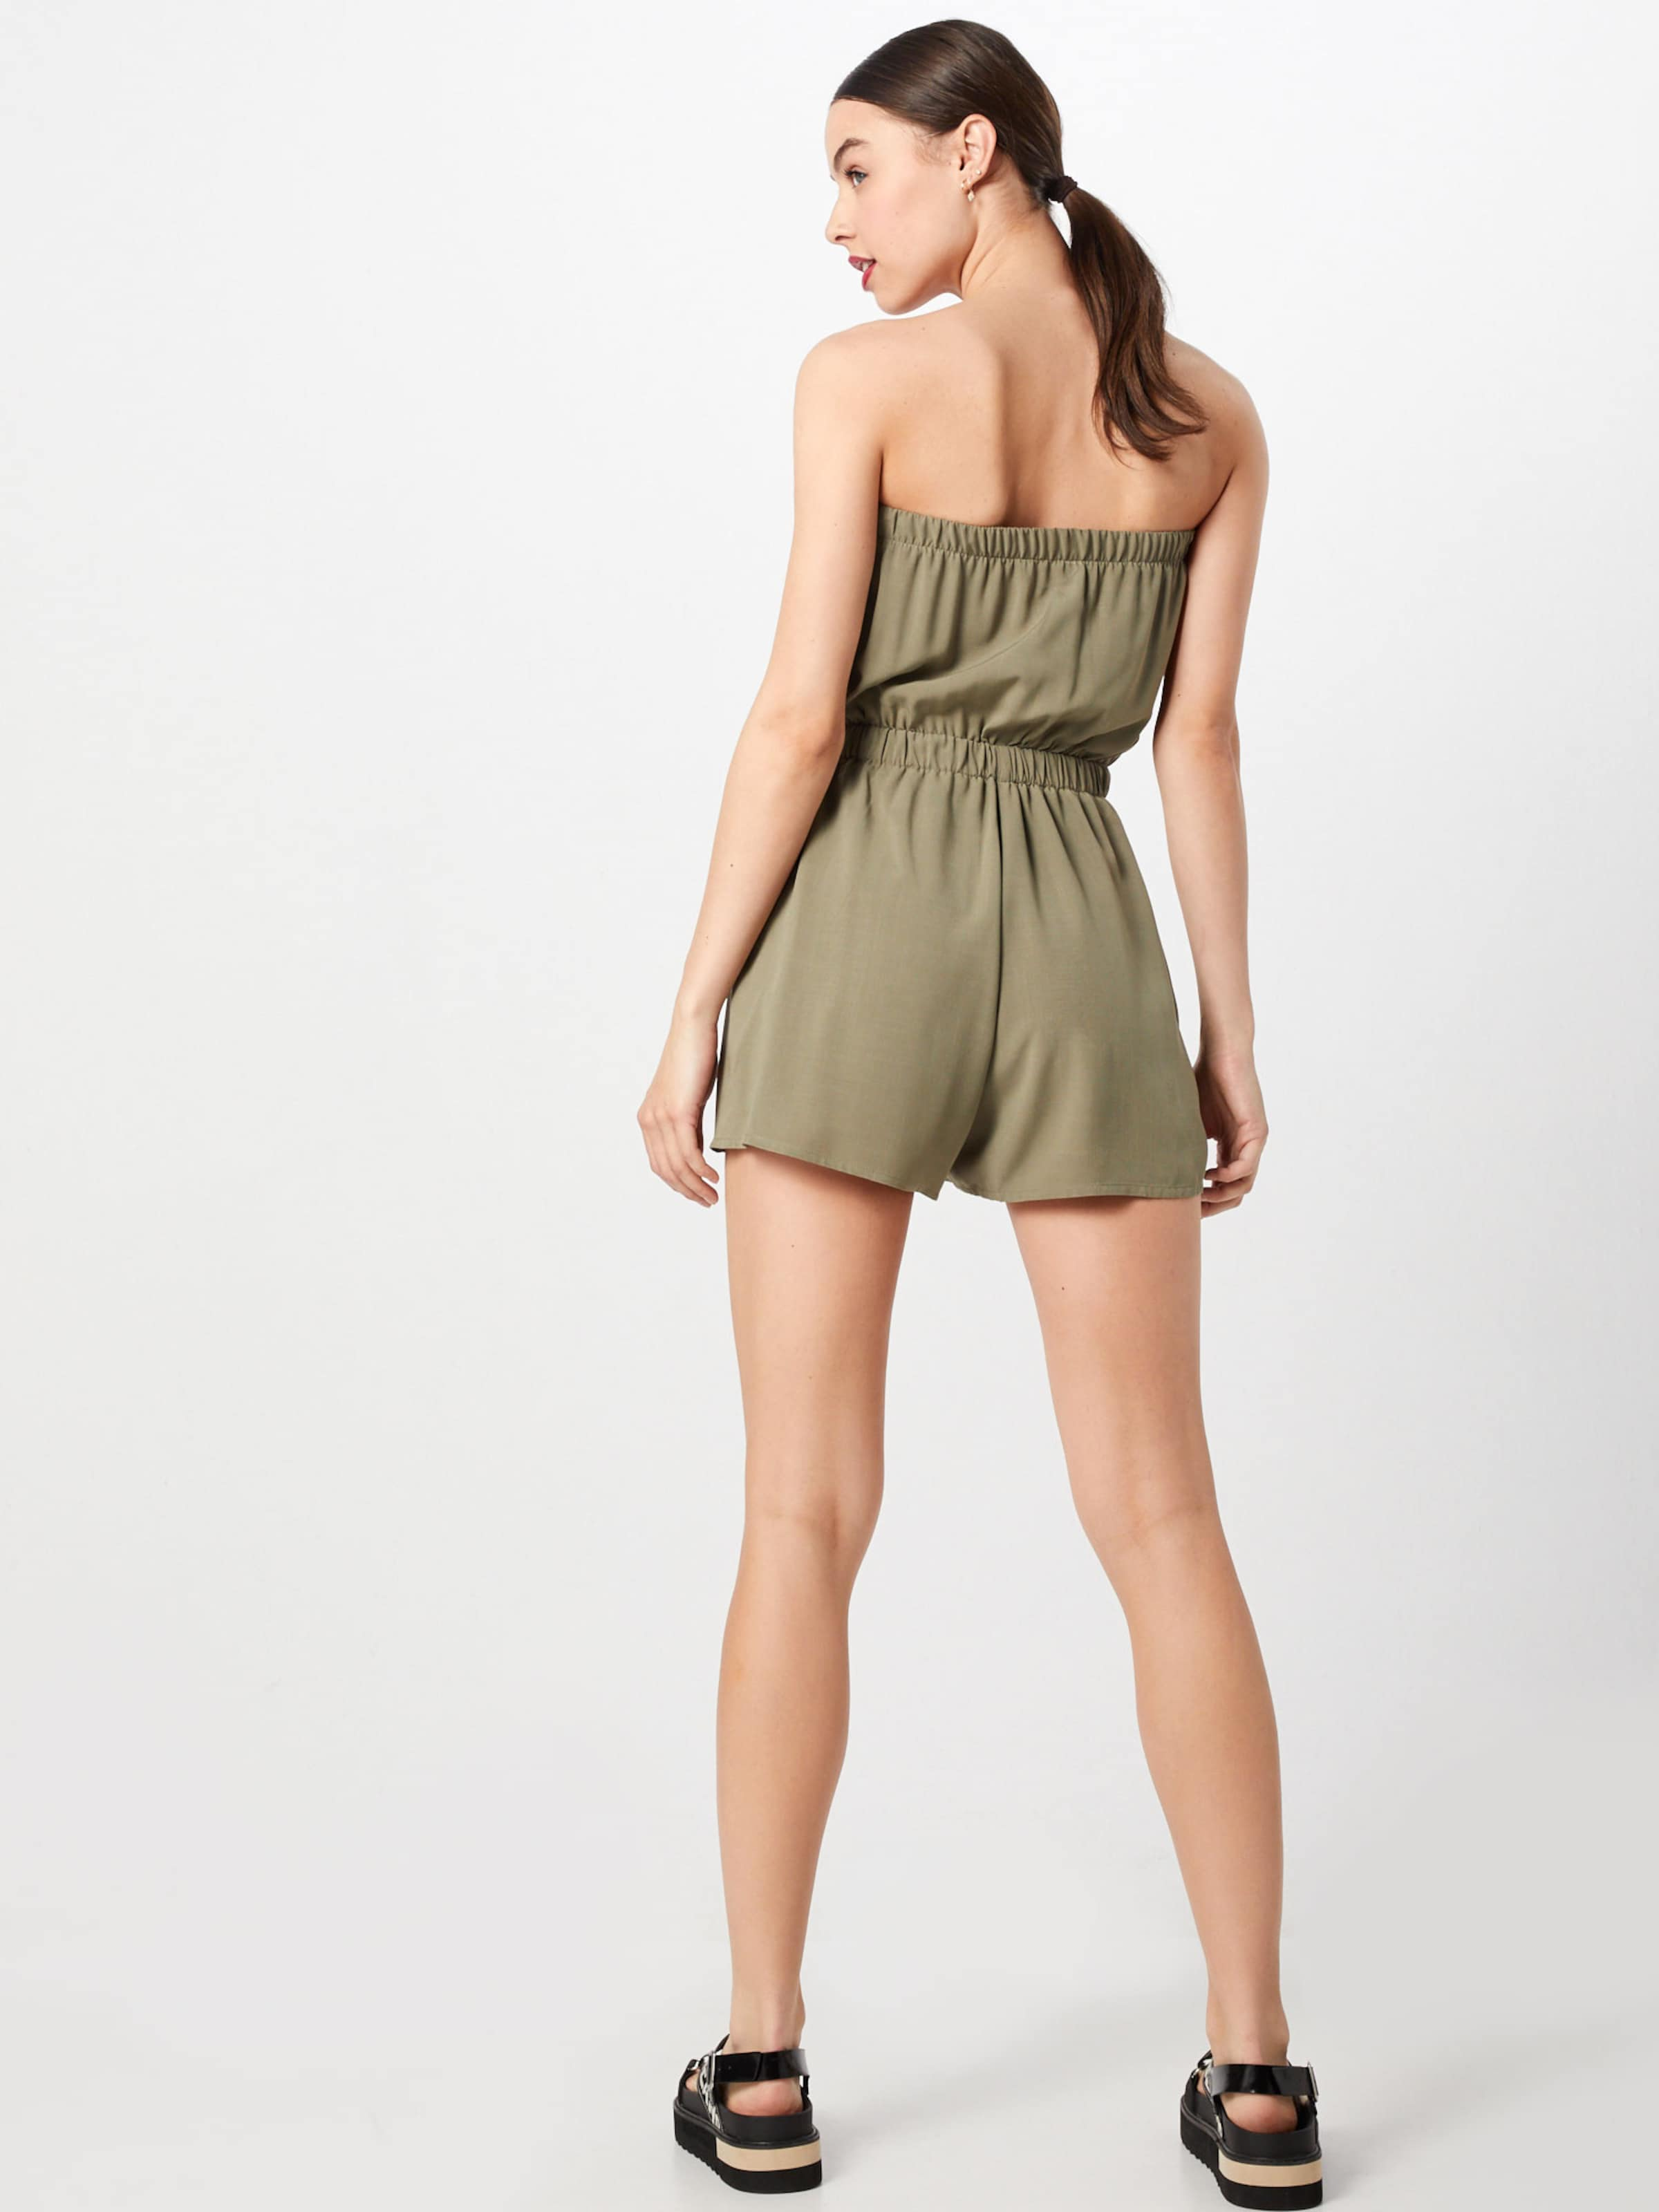 't New Bandeau In Psuit' Look Plain Khaki Frnt F Btn Overall qzpVUMS